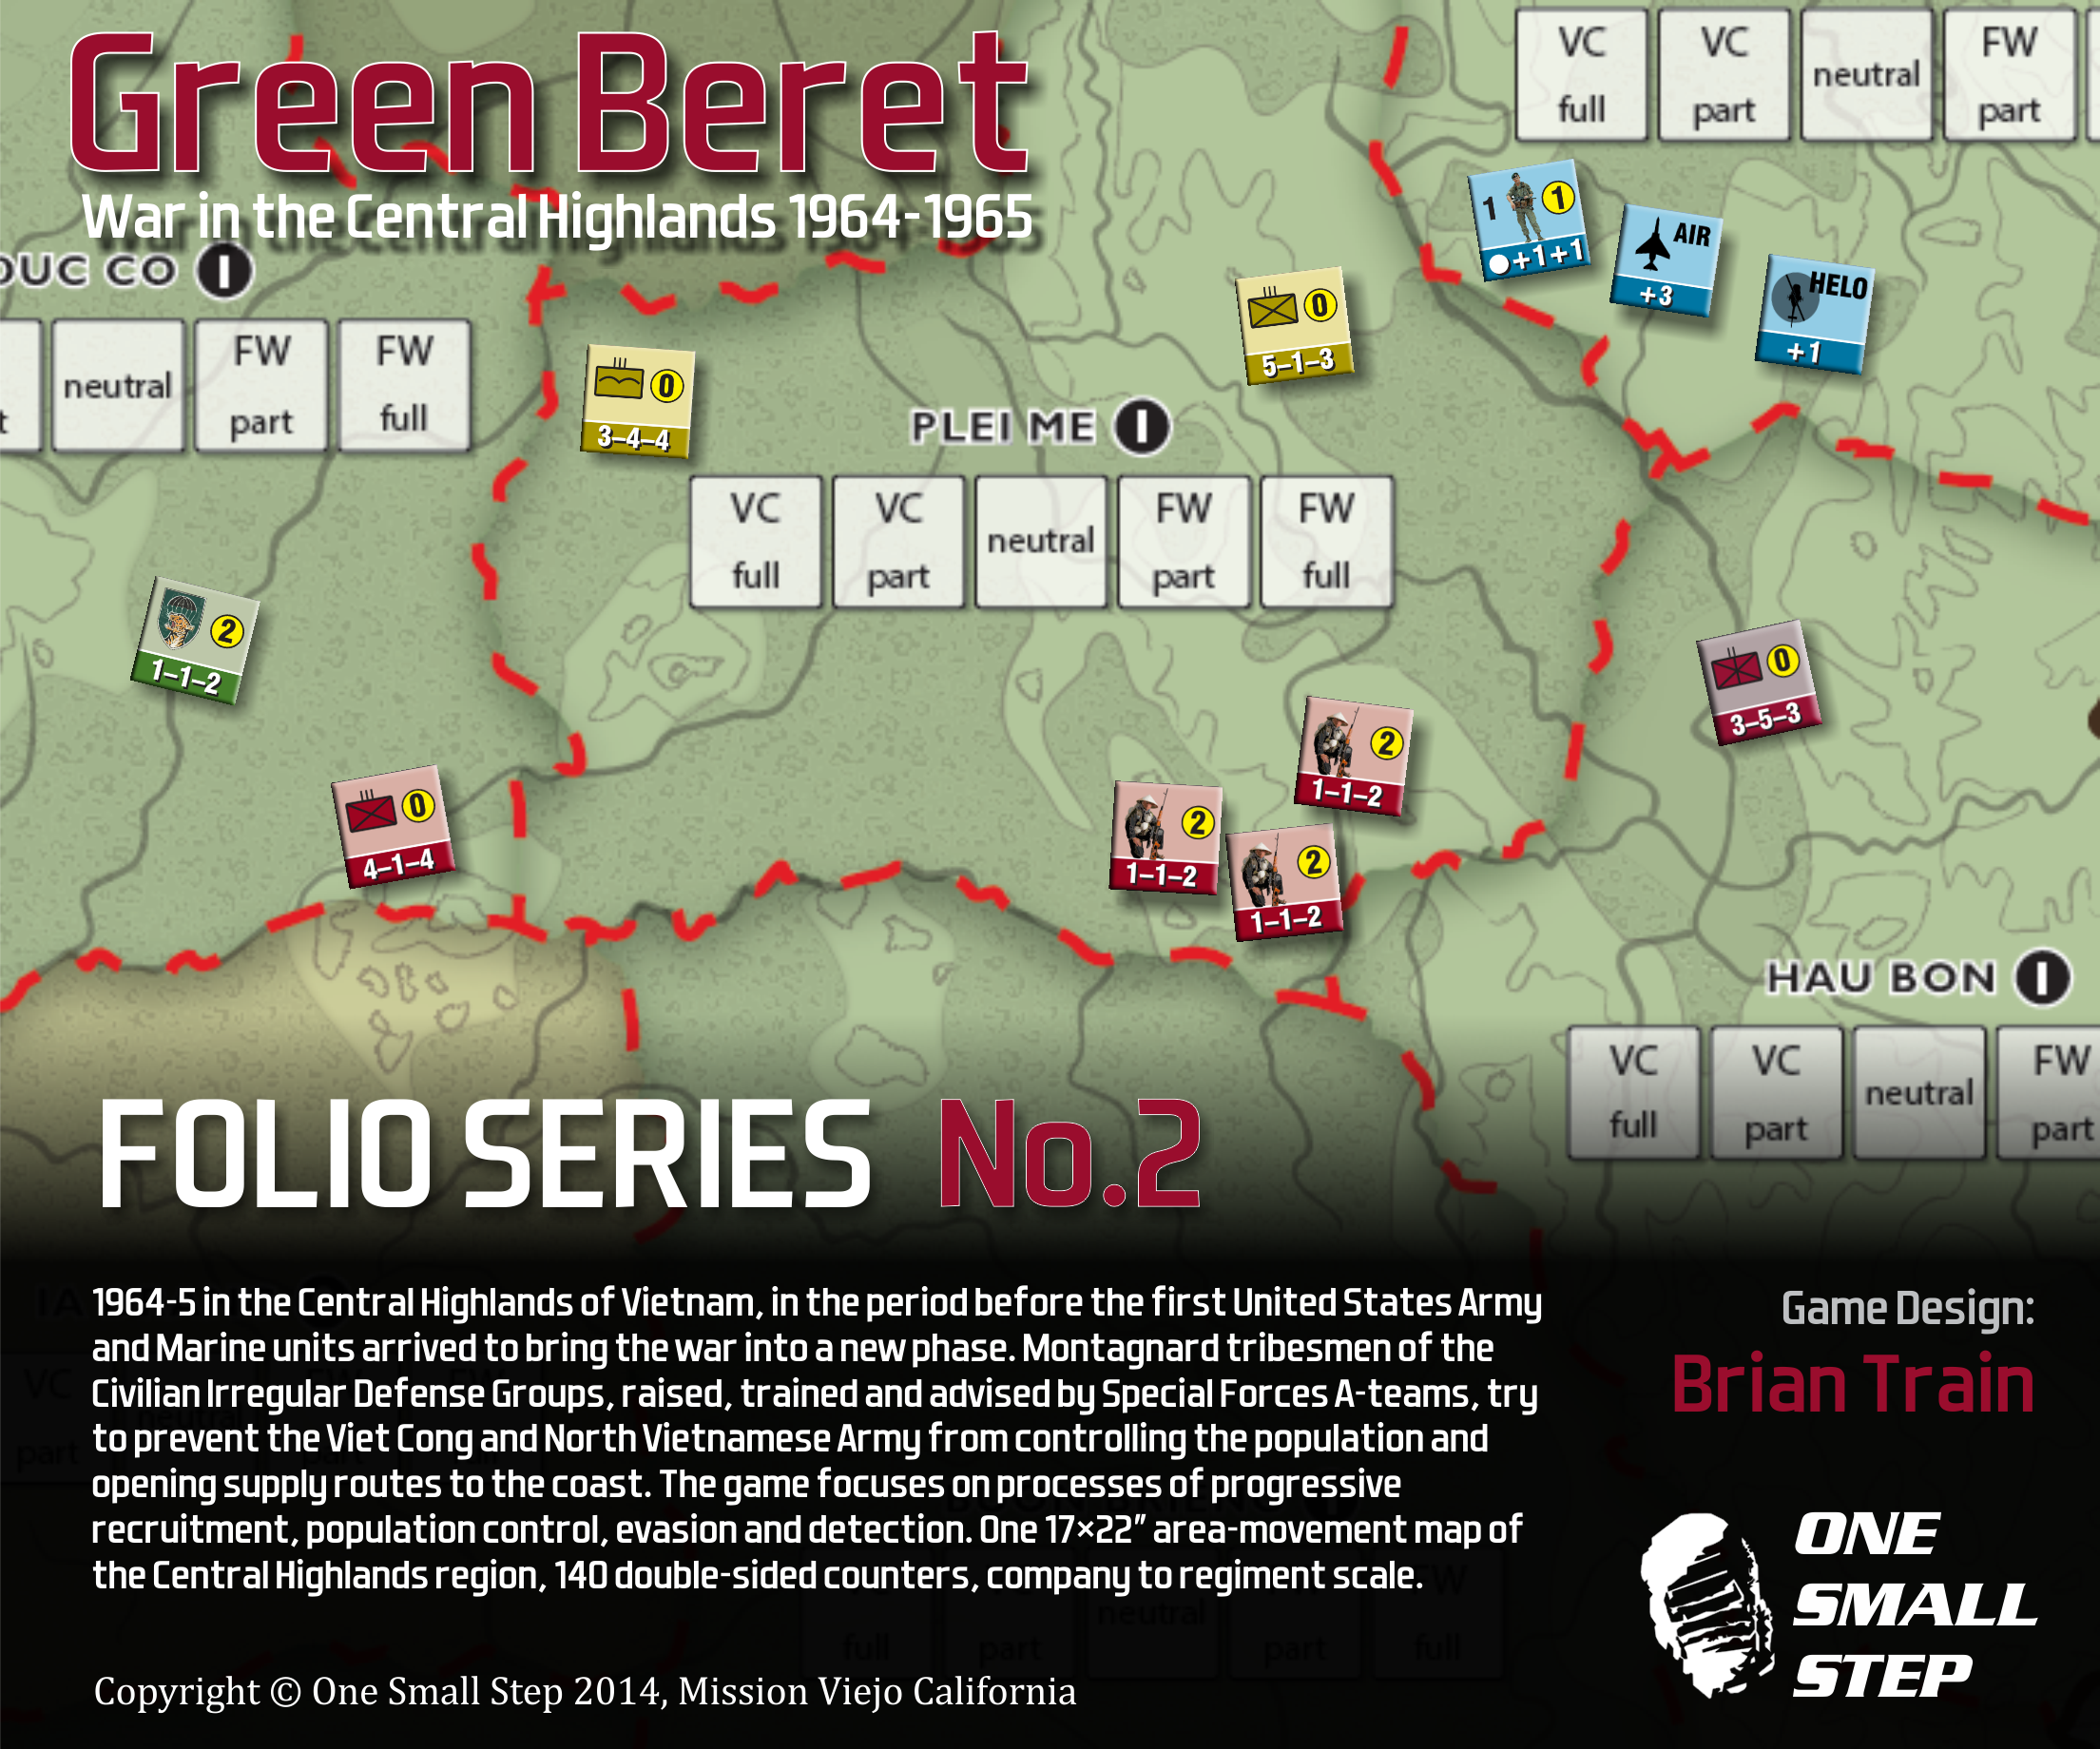 Folio Series 2: Green Beret